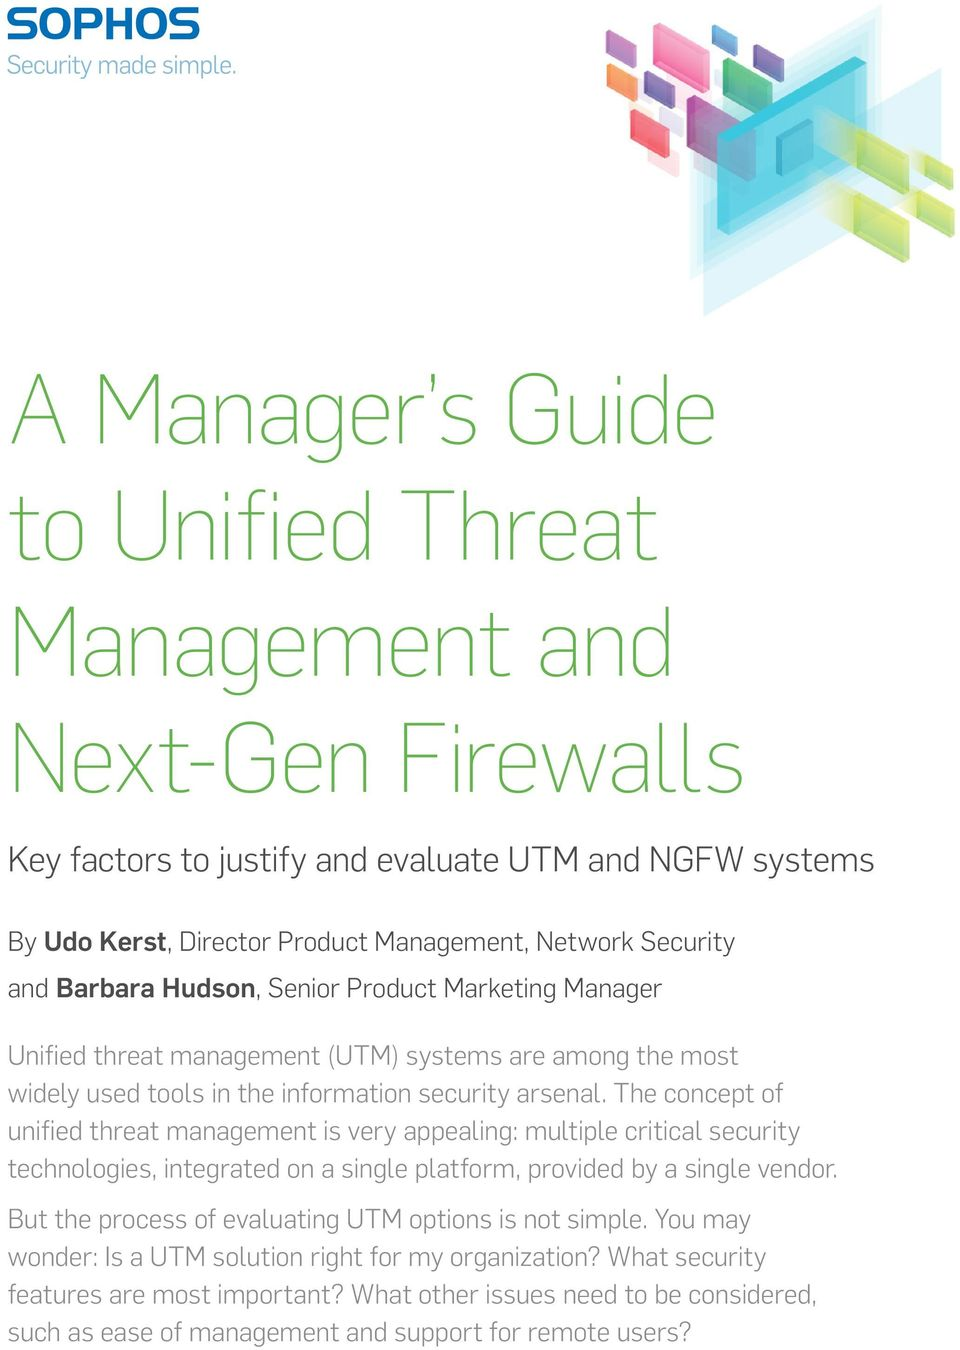 The concept of unified threat management is very appealing: multiple critical security technologies, integrated on a single platform, provided by a single vendor.